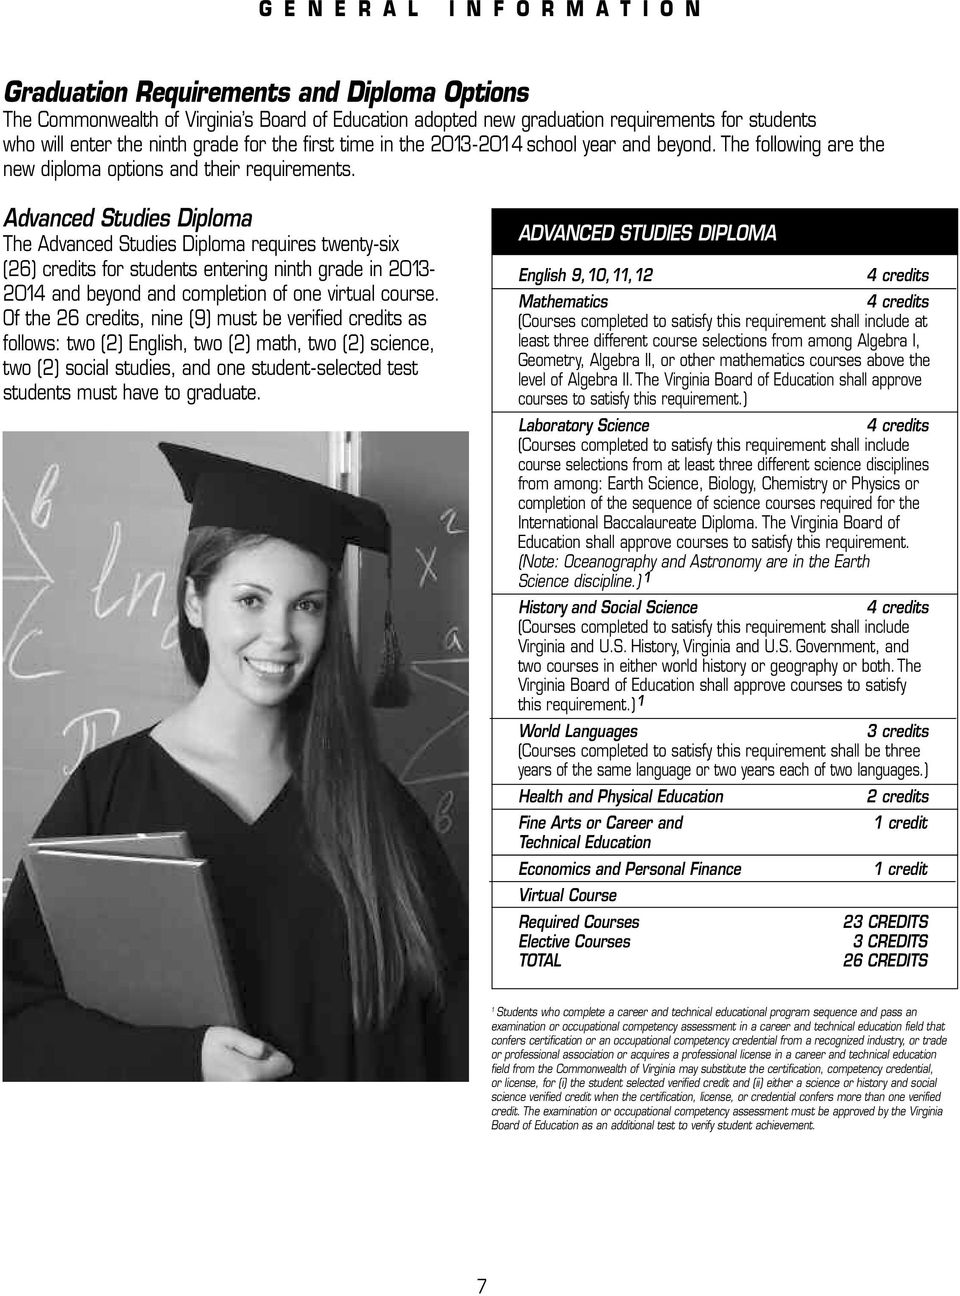 Advanced Studies Diploma The Advanced Studies Diploma requires twenty-six (26) credits for students entering ninth grade in 2013-2014 and beyond and completion of one virtual course.